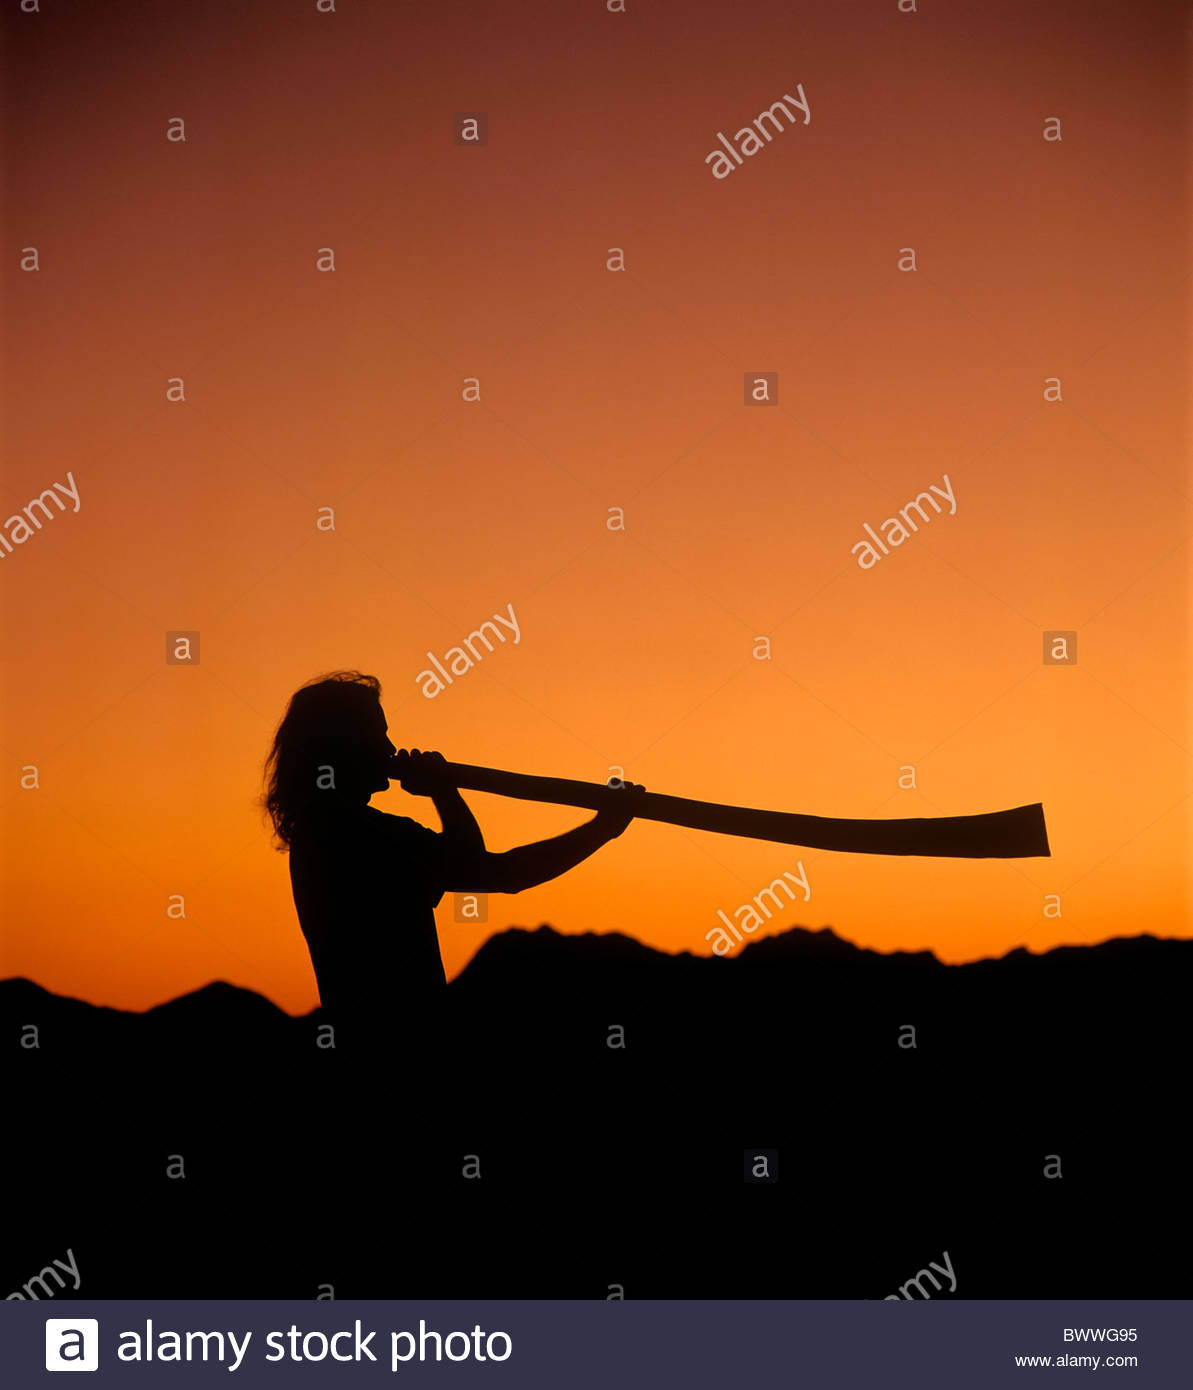 Man playing a didgeridoo at sunset with Tucson Mountains in background silhouette Orange and Black Stock Foto